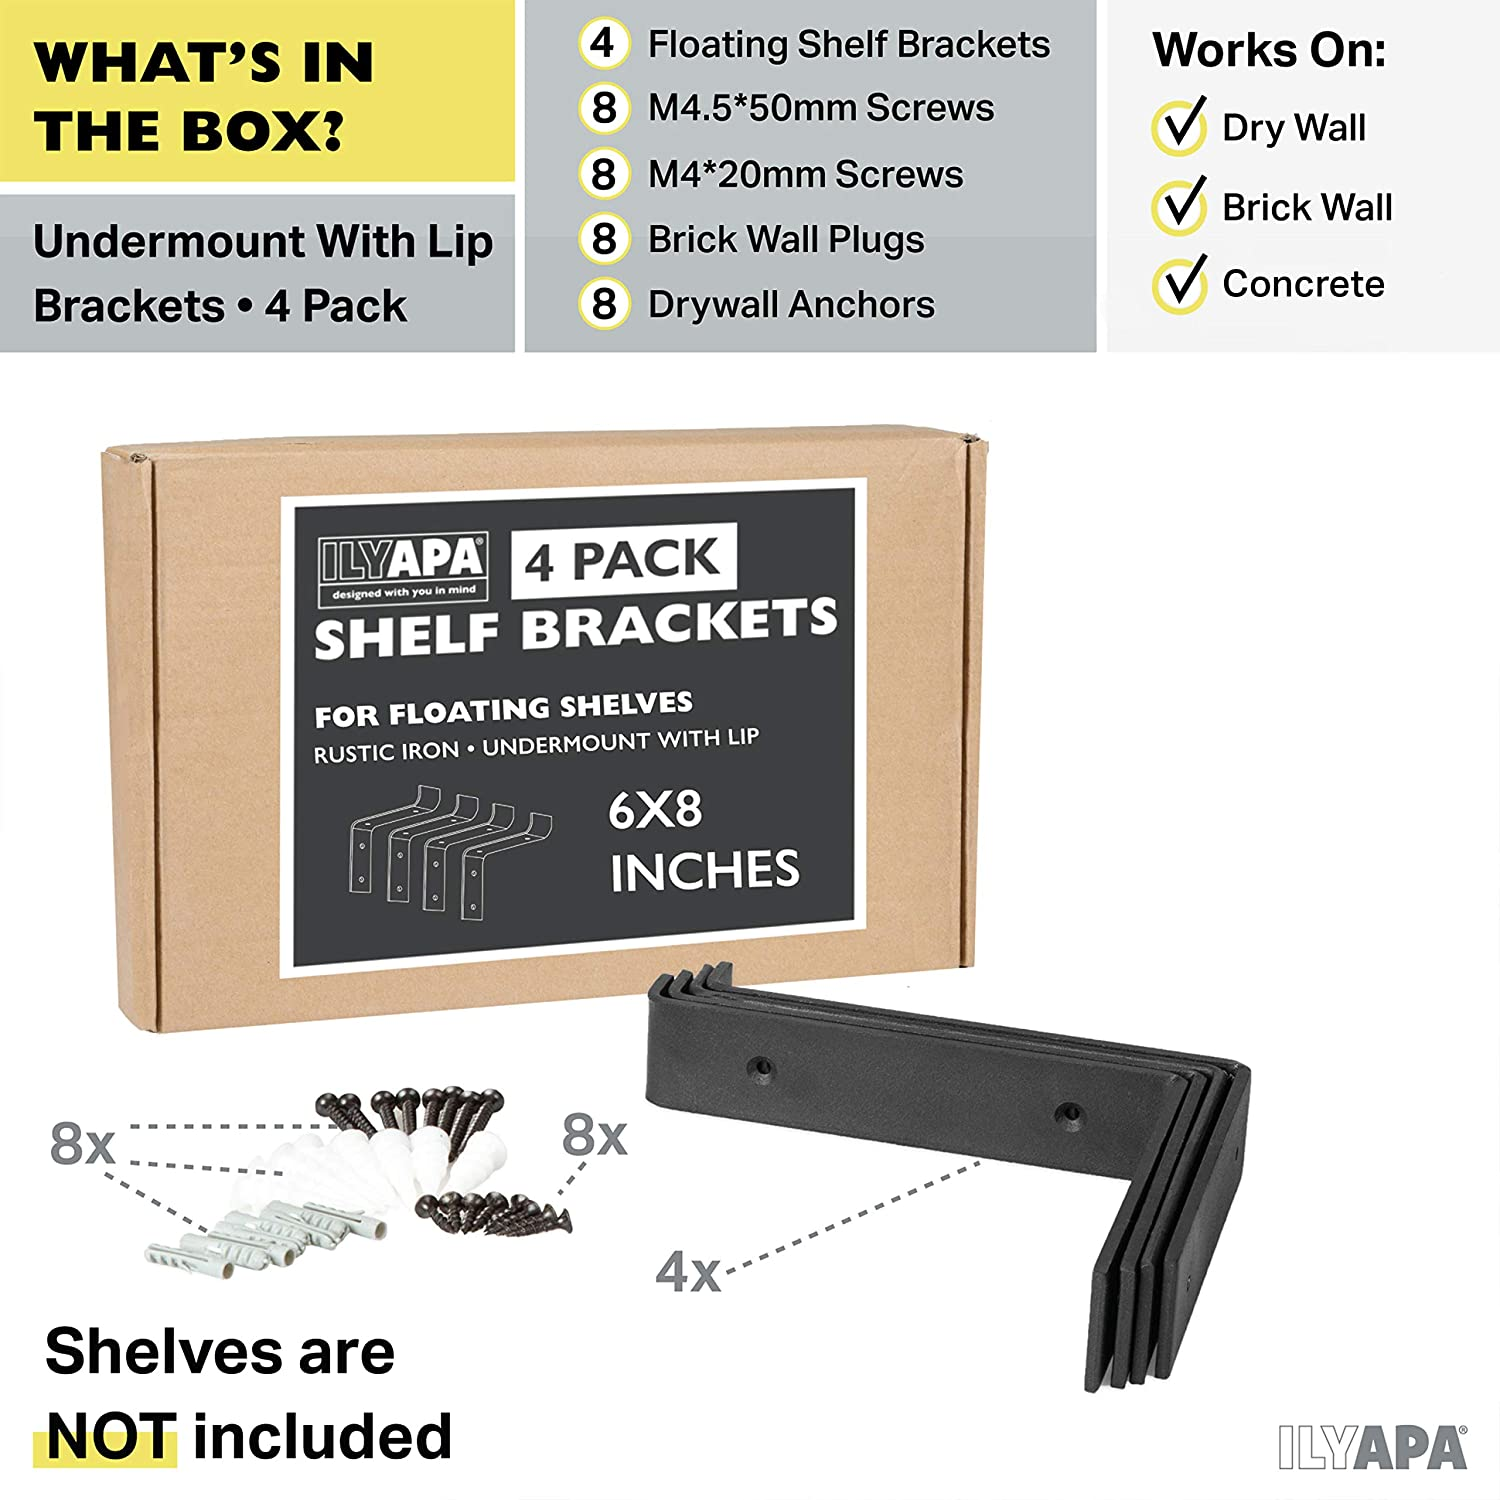 Heavy Duty Steel Floating Shelf Brackets, Undermount Bracket With Lip- Farmhouse Rustic Iron Matte Finish - 4 Pack of 6 x 7.25 Inch Industrial Metal Shelf Holders, Joint Angle Brackets for Wall Shelve: Home Improvement